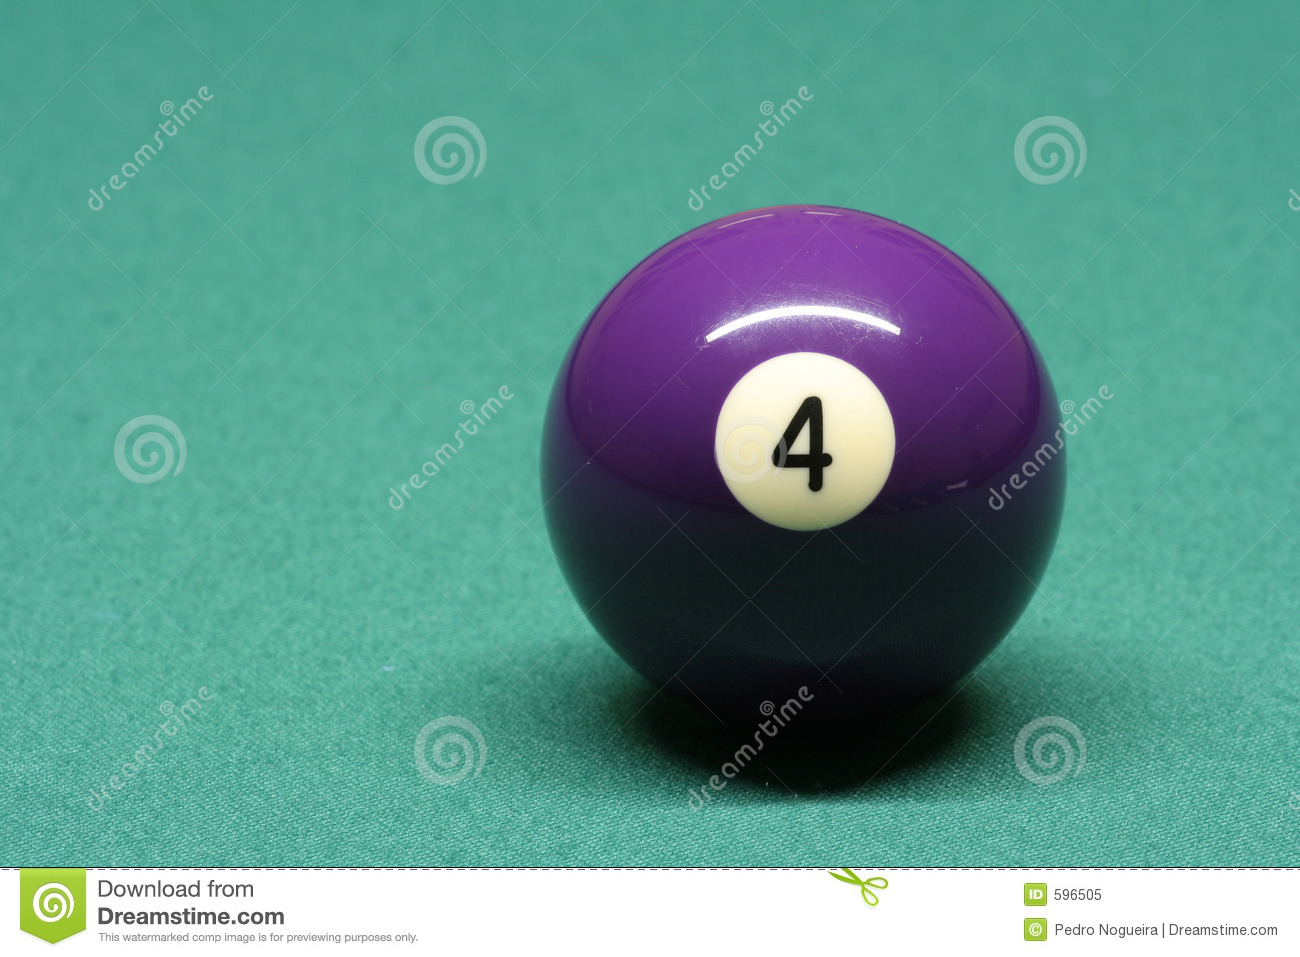 Pool ball number 04